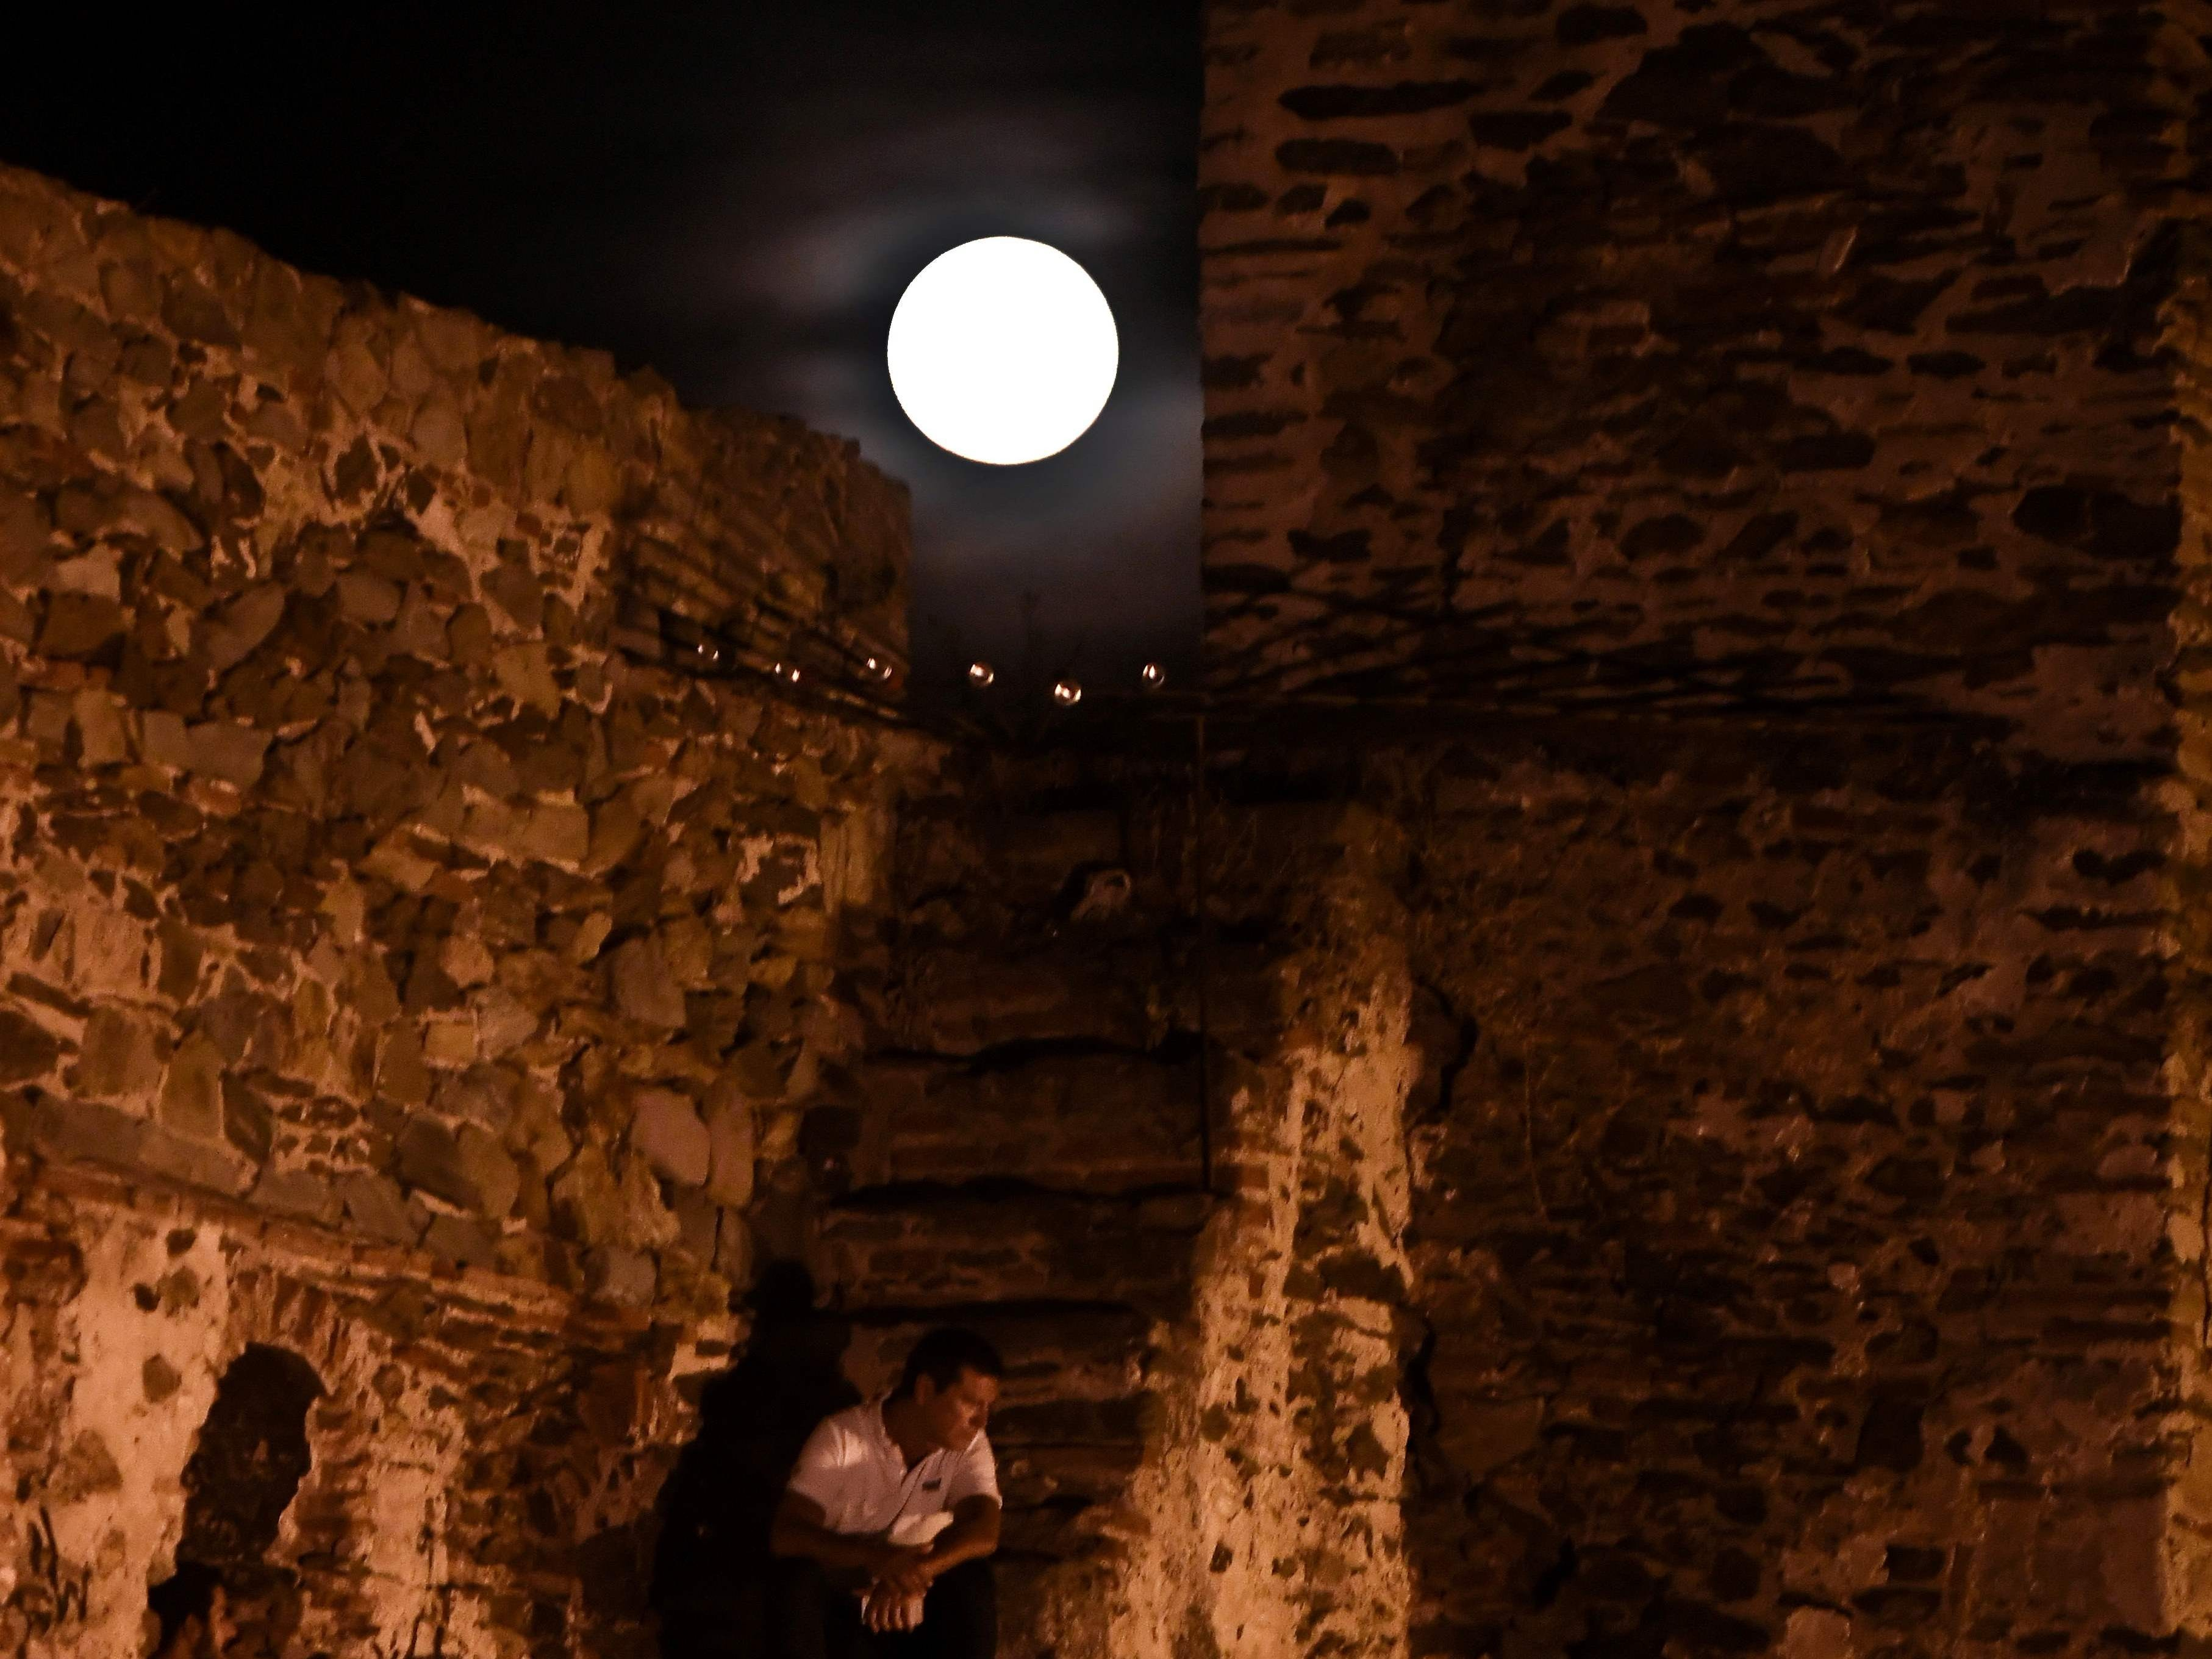 People watch a musical event under the full moon on the Byzantine Walls in Thessaloniki on Aug. 26, 2018 in Thessaloniki, Greece.